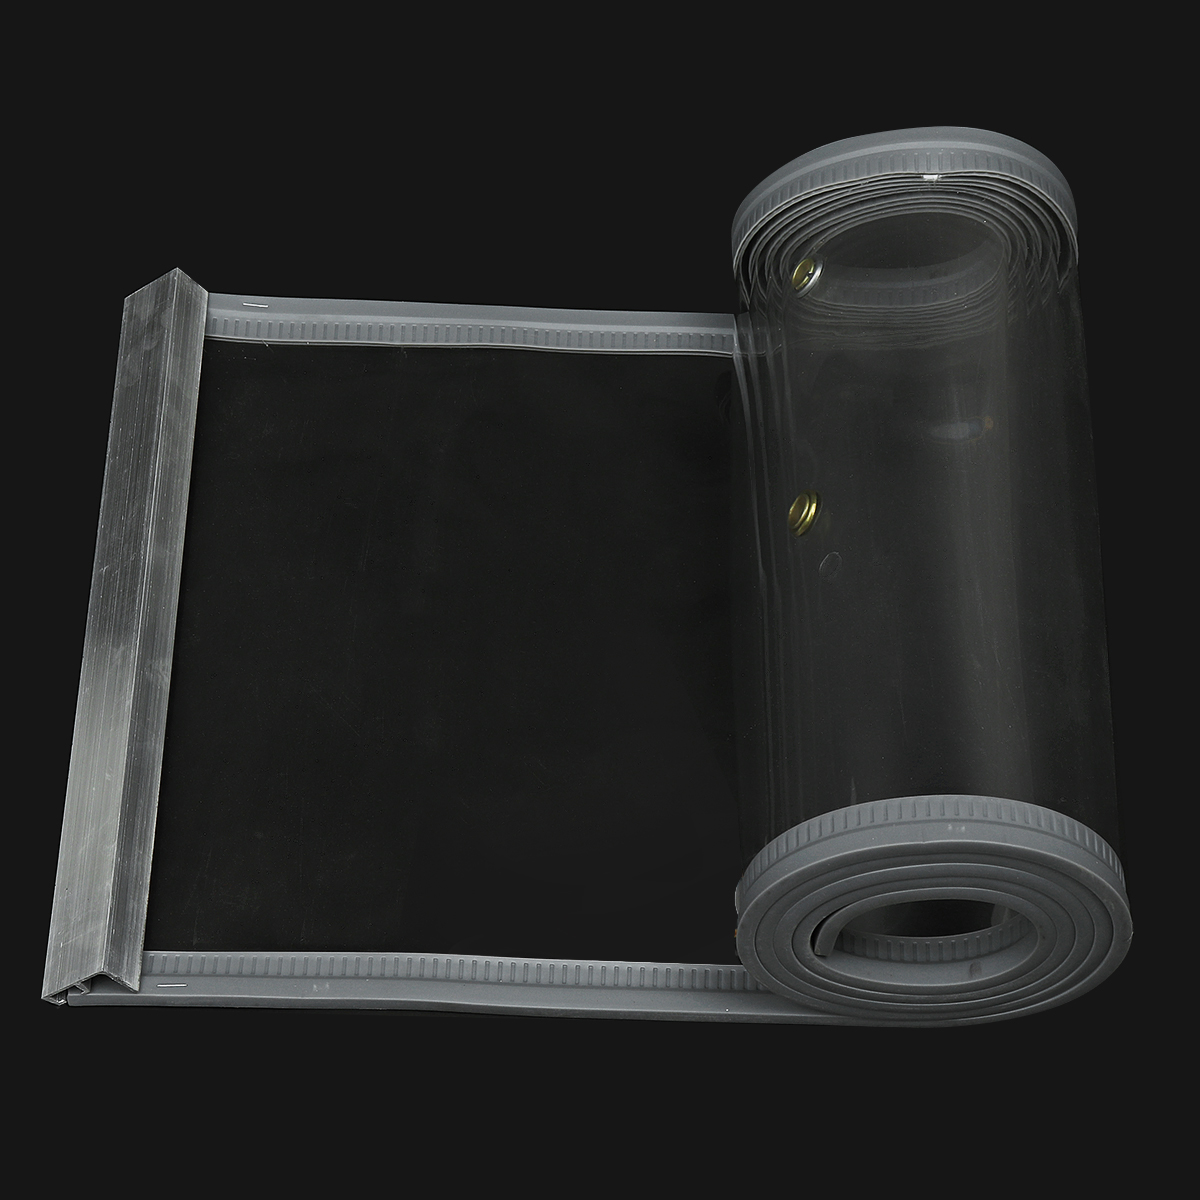 40cm*2-2.5m High Clear Flexible PVC Door Curtains Strip Magnetic Closing Fly Insect-resistant Screen